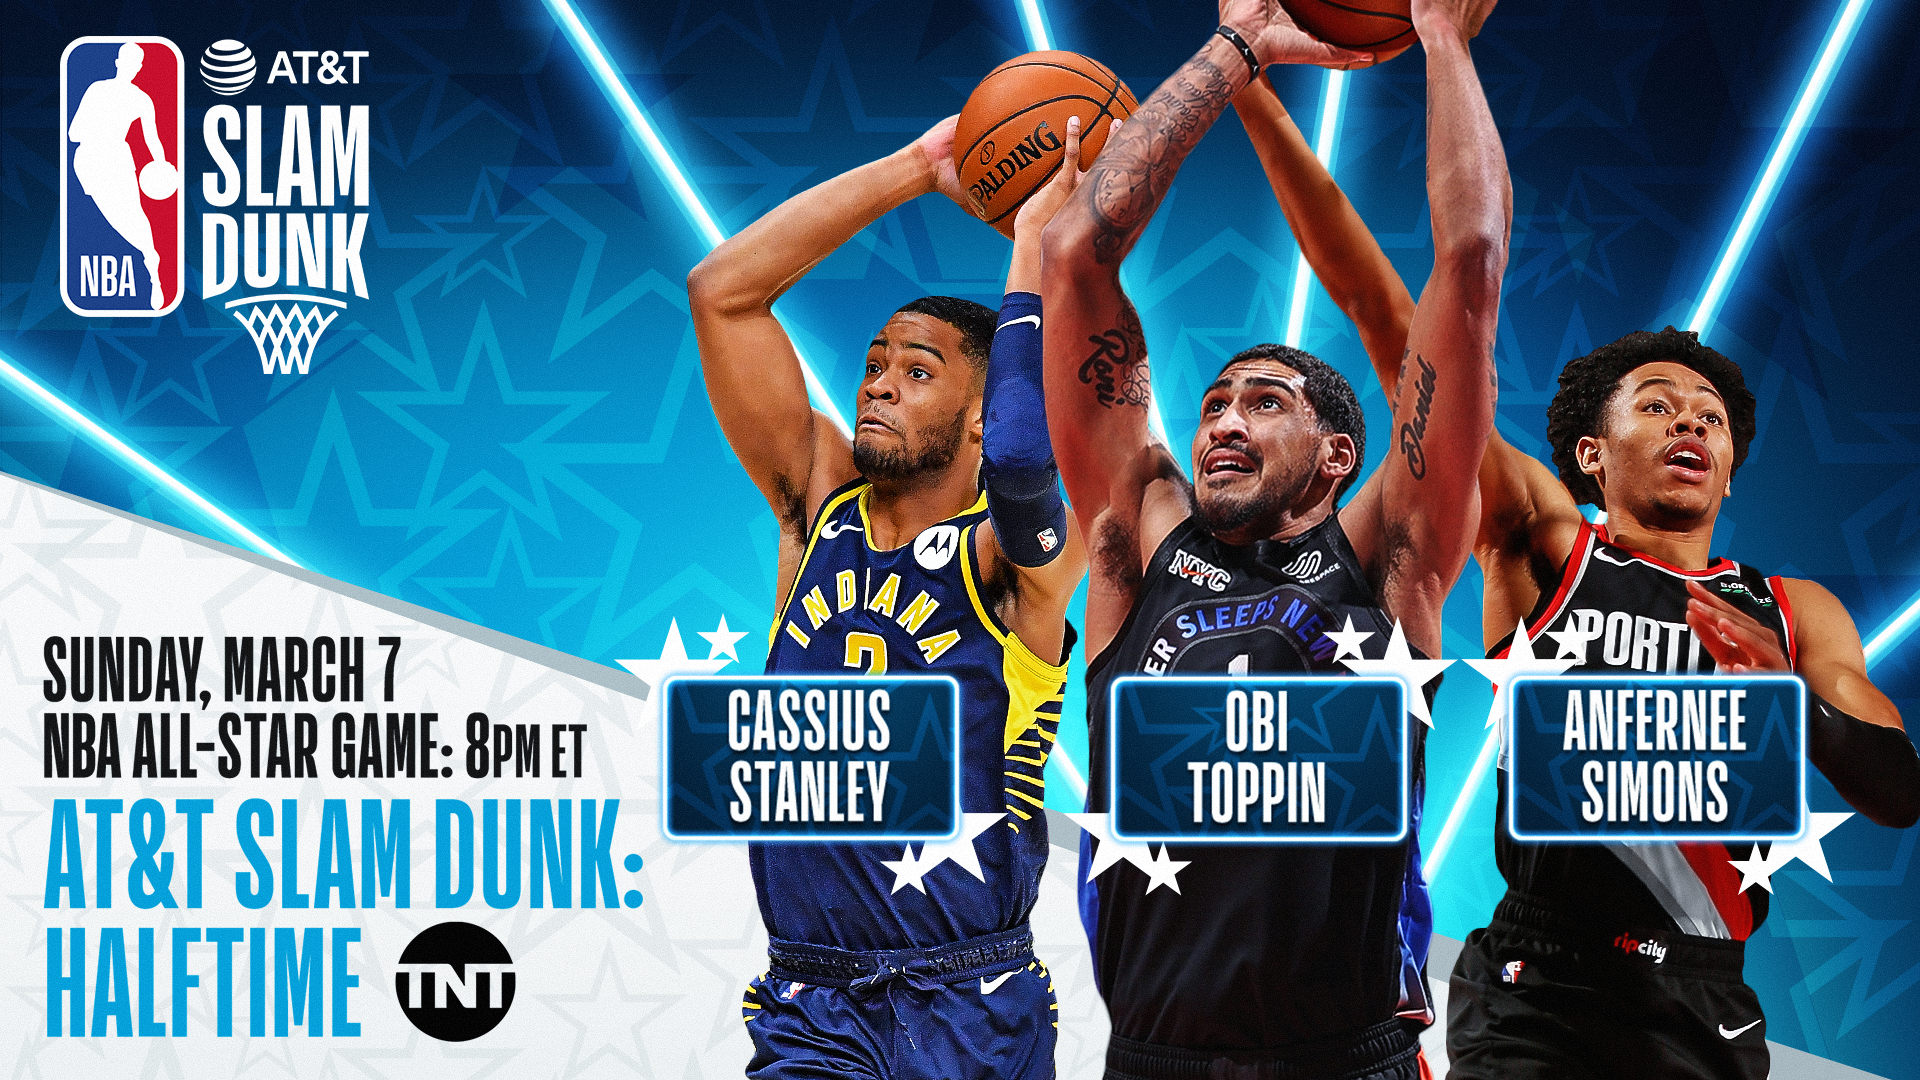 2021 AT&T Slam Dunk field revealed